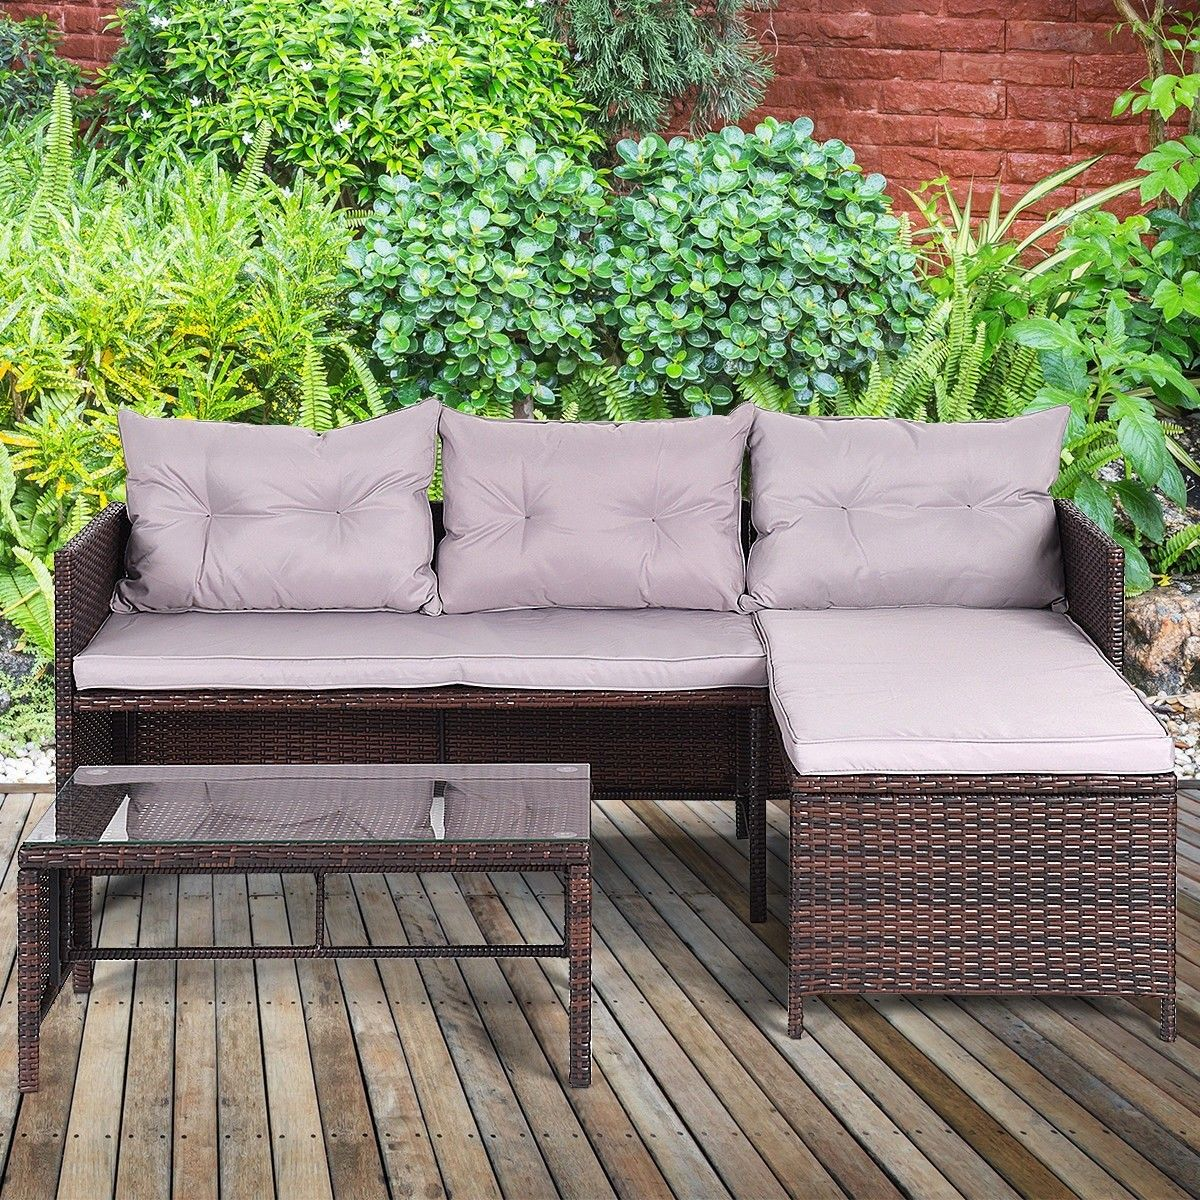 3 Pcs Rattan Wicker Deck Couch Outdoor Patio Sofa Set Furniture Sofa Set Patio Sofa Set Garden Patio Furniture